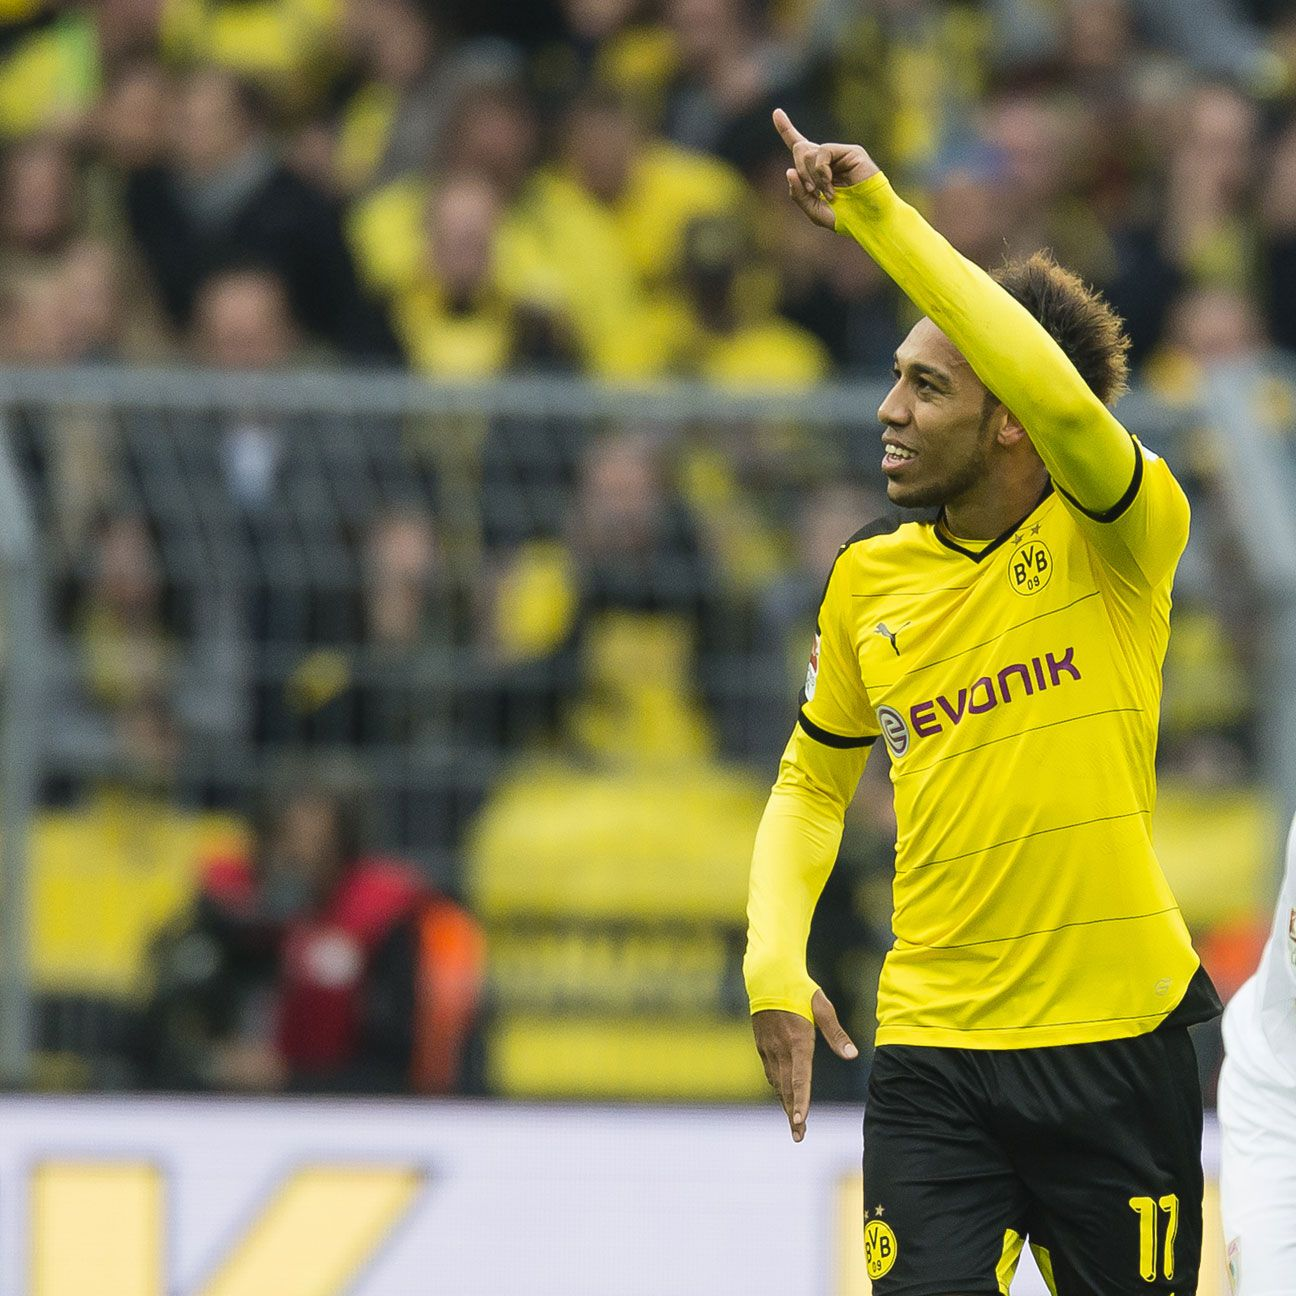 Pierre-Emerick Aubameyang continued his goalscoring exploits with a hat trick on Sunday.